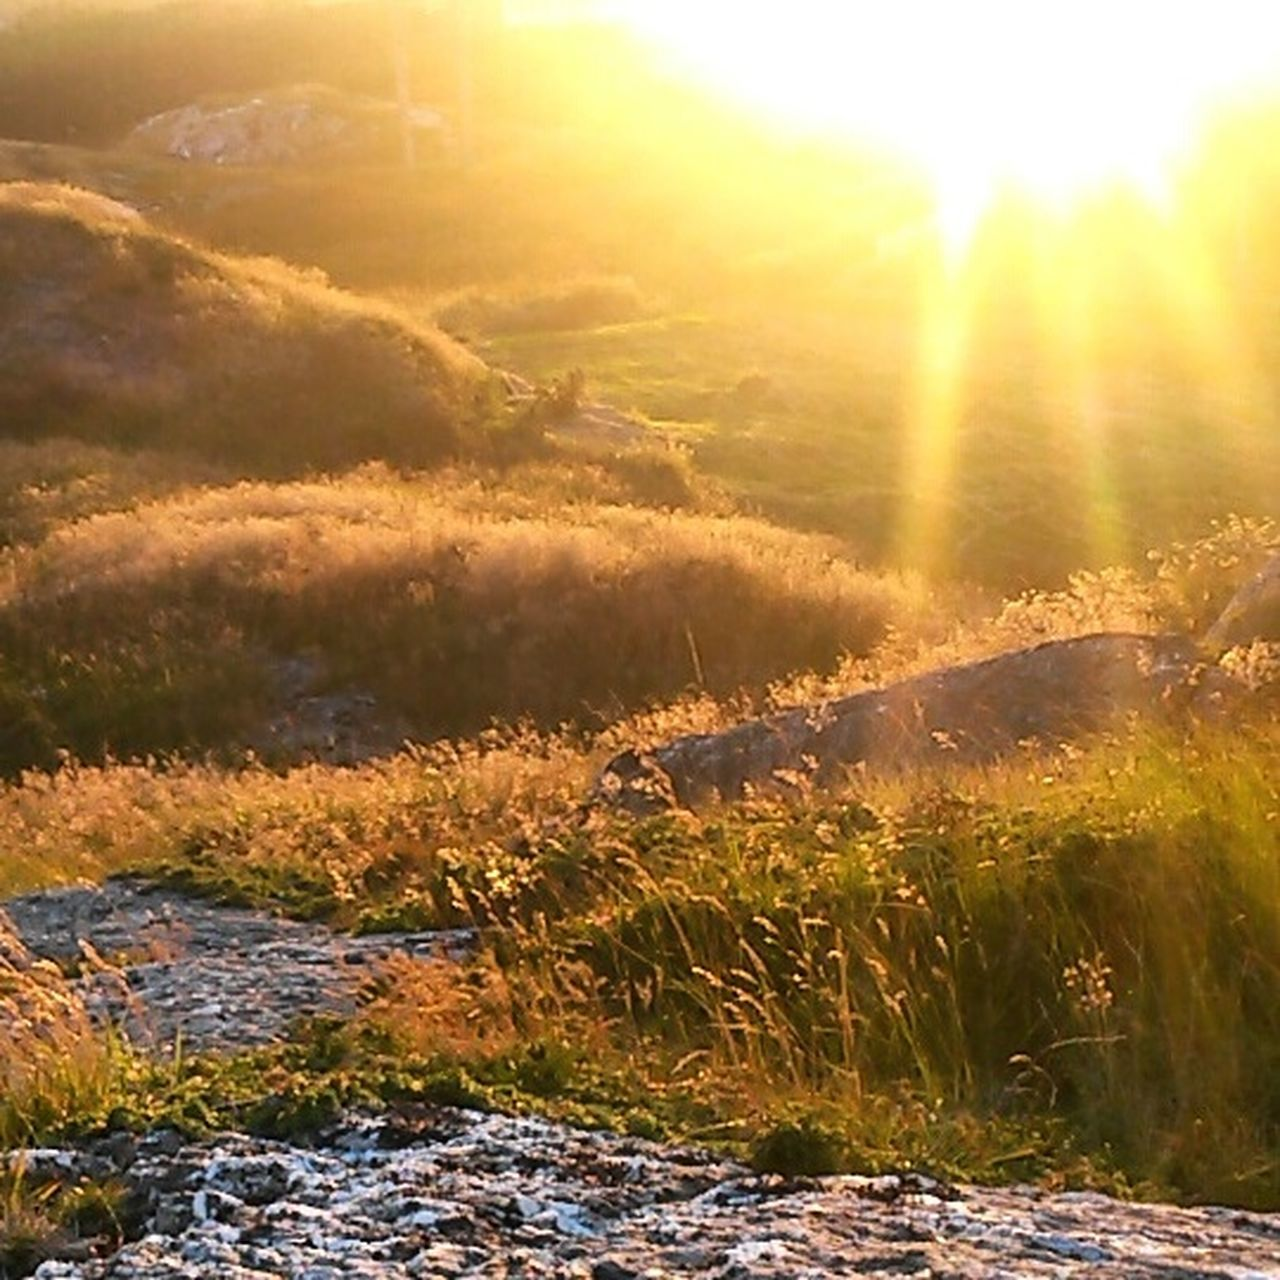 sunbeam, nature, sunlight, lens flare, grass, sunset, beauty in nature, sun, landscape, outdoors, scenics, no people, day, sky